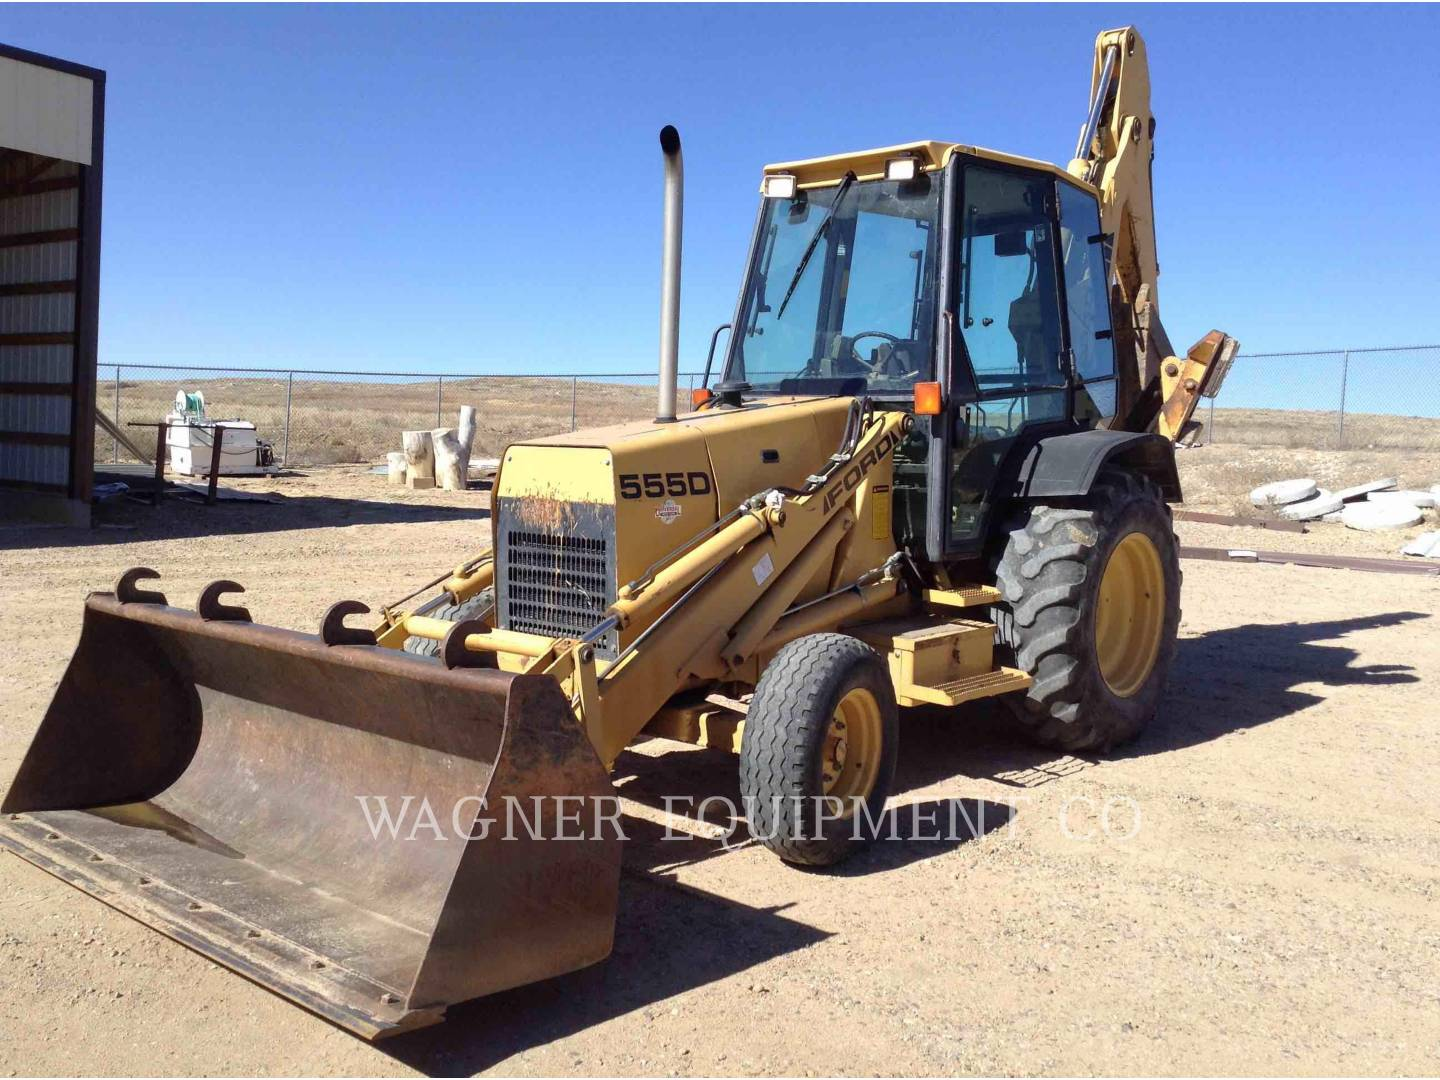 New Holland Lb75b Parts List : New holland for sale from wagner